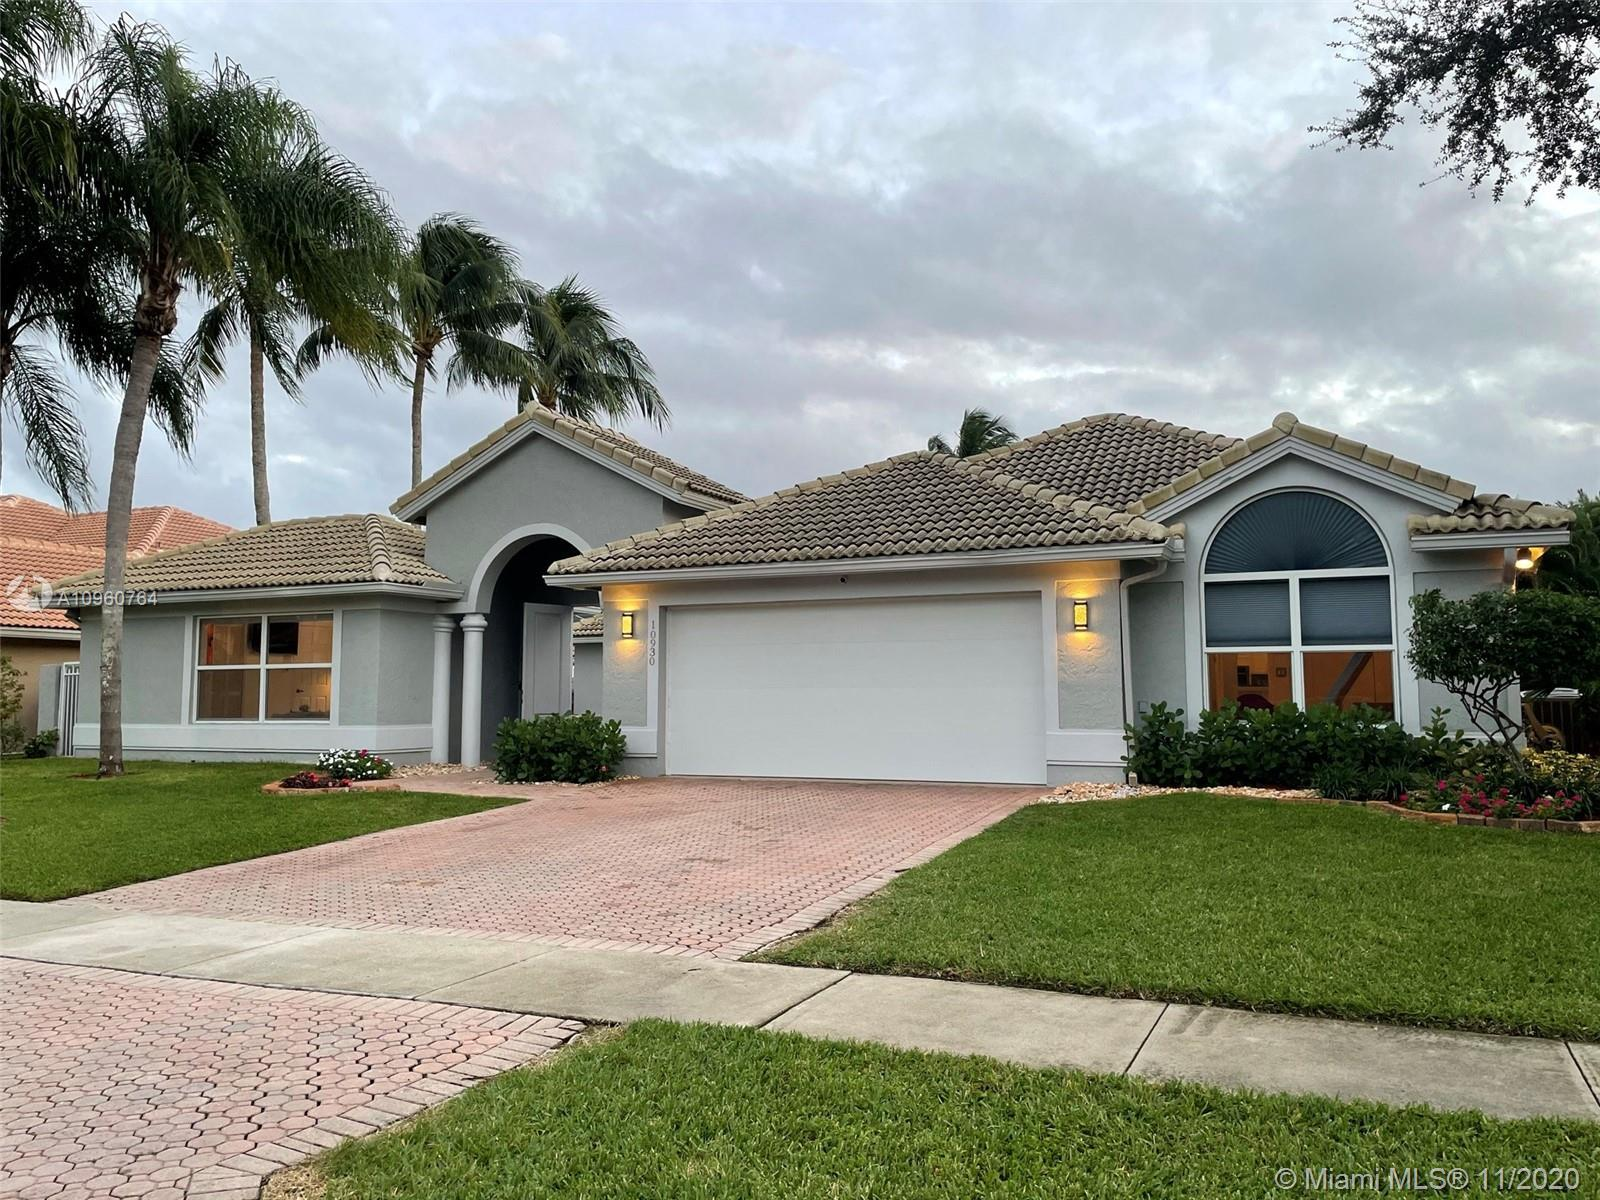 Unique home impeccable charming on the most desirable Boca isles south! Vaulted ceilings 4 bedrooms